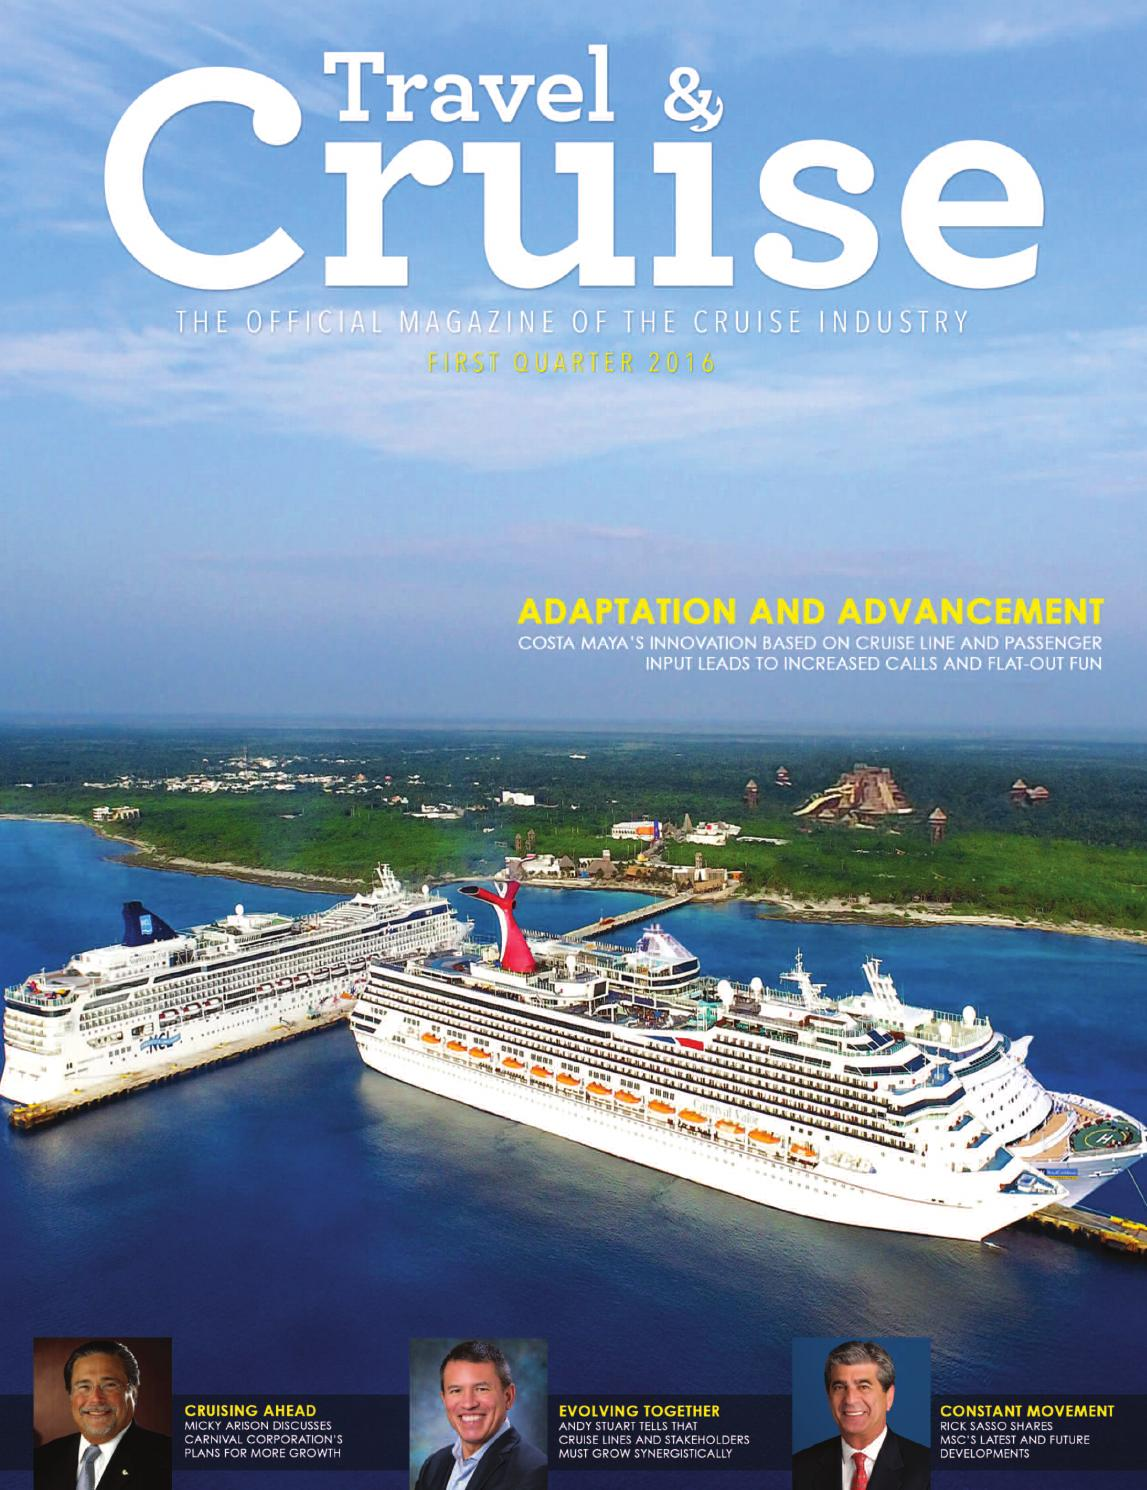 cruise essay If you are searching for a book by mrs catherine mcgrew jaime panama canal cruise: a photo essay in pdf form, then you have come on to faithful site.